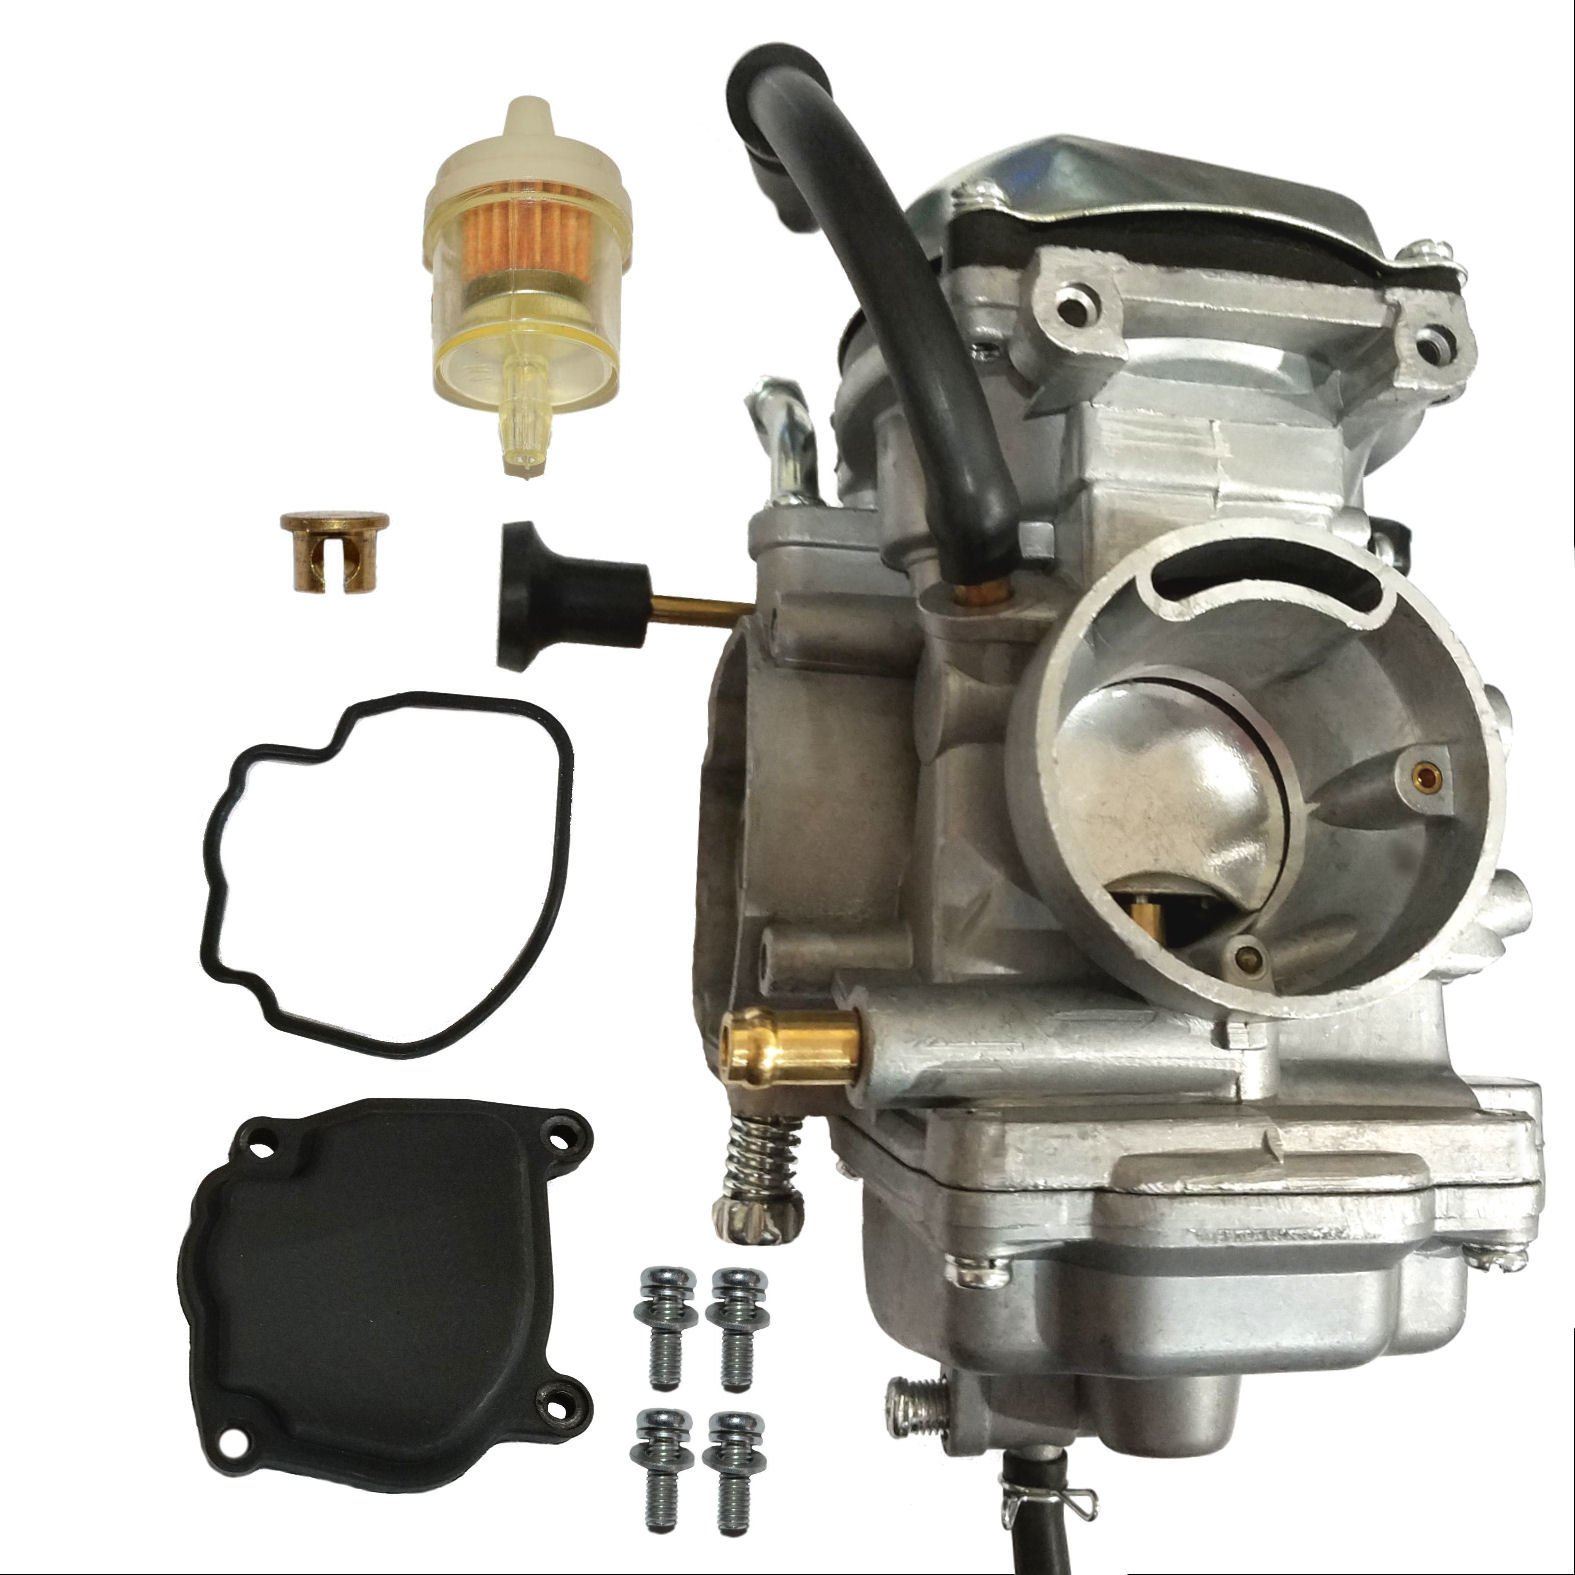 ZOOM ZOOM PARTS PERFORMANCE CARBURETOR YAMAHA WOLVERINE 350 YFM 350 YFM350 ATV 1996-2005 CARB